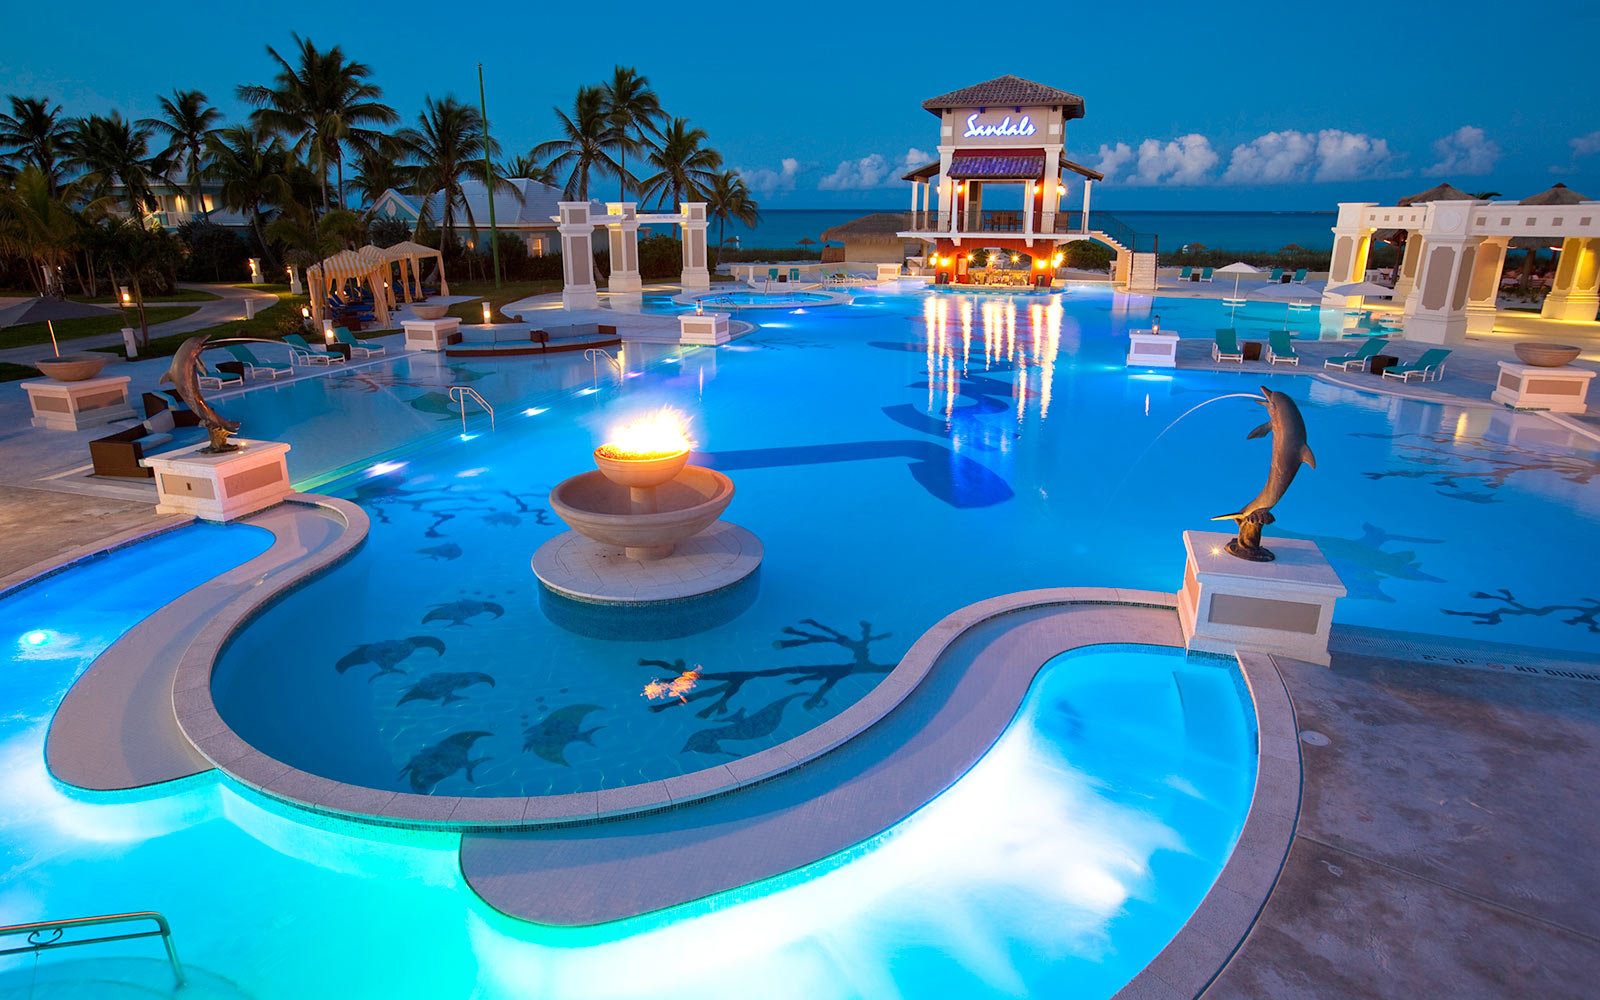 Bahamas Sandals Royal Hotel Booking